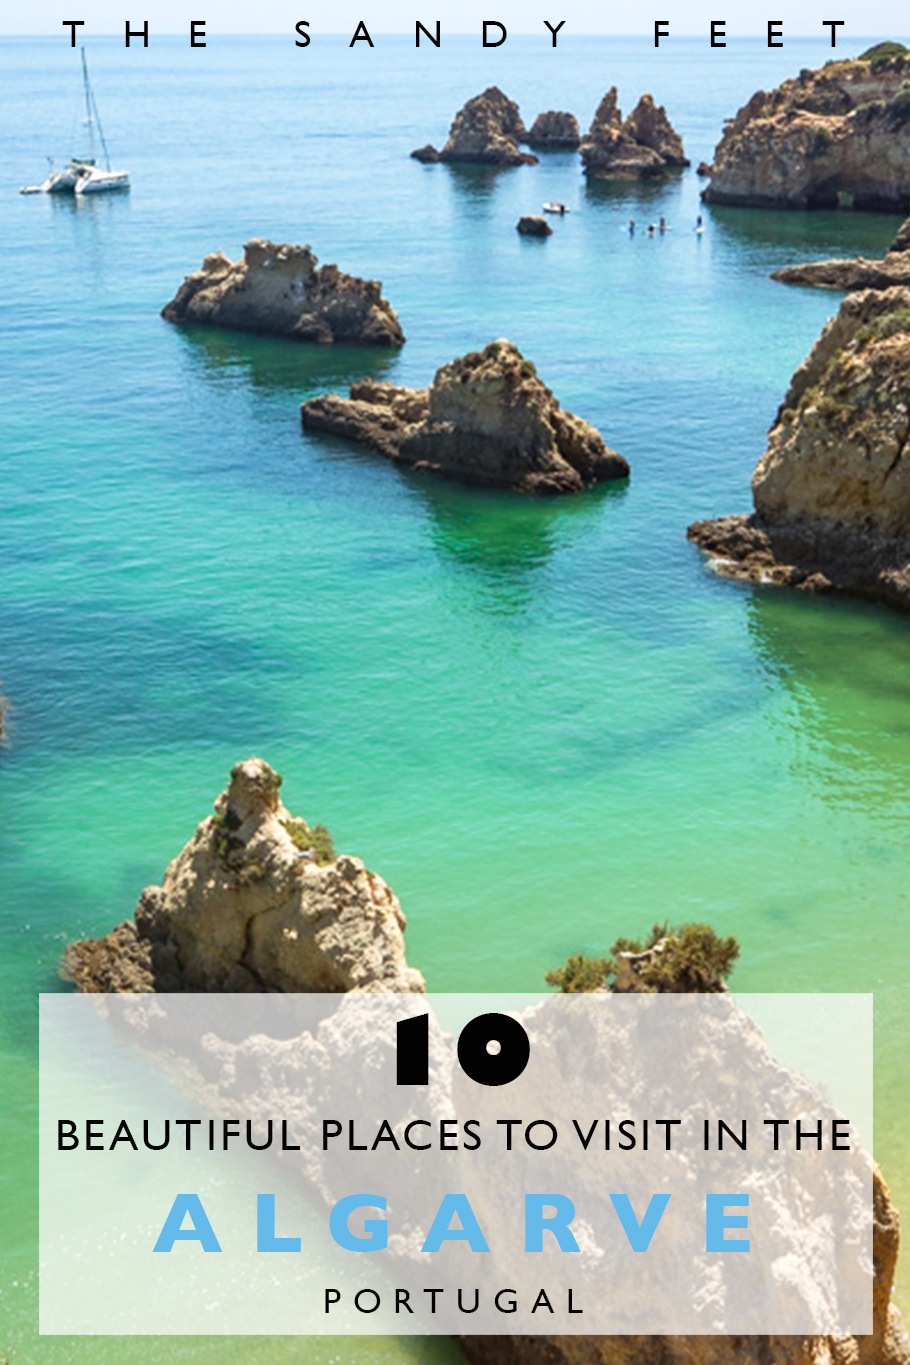 10 Beautiful Places To Visit In The Algarve | Portugal : The Best Beaches In The Algarve, Things To Do And Where To Stay